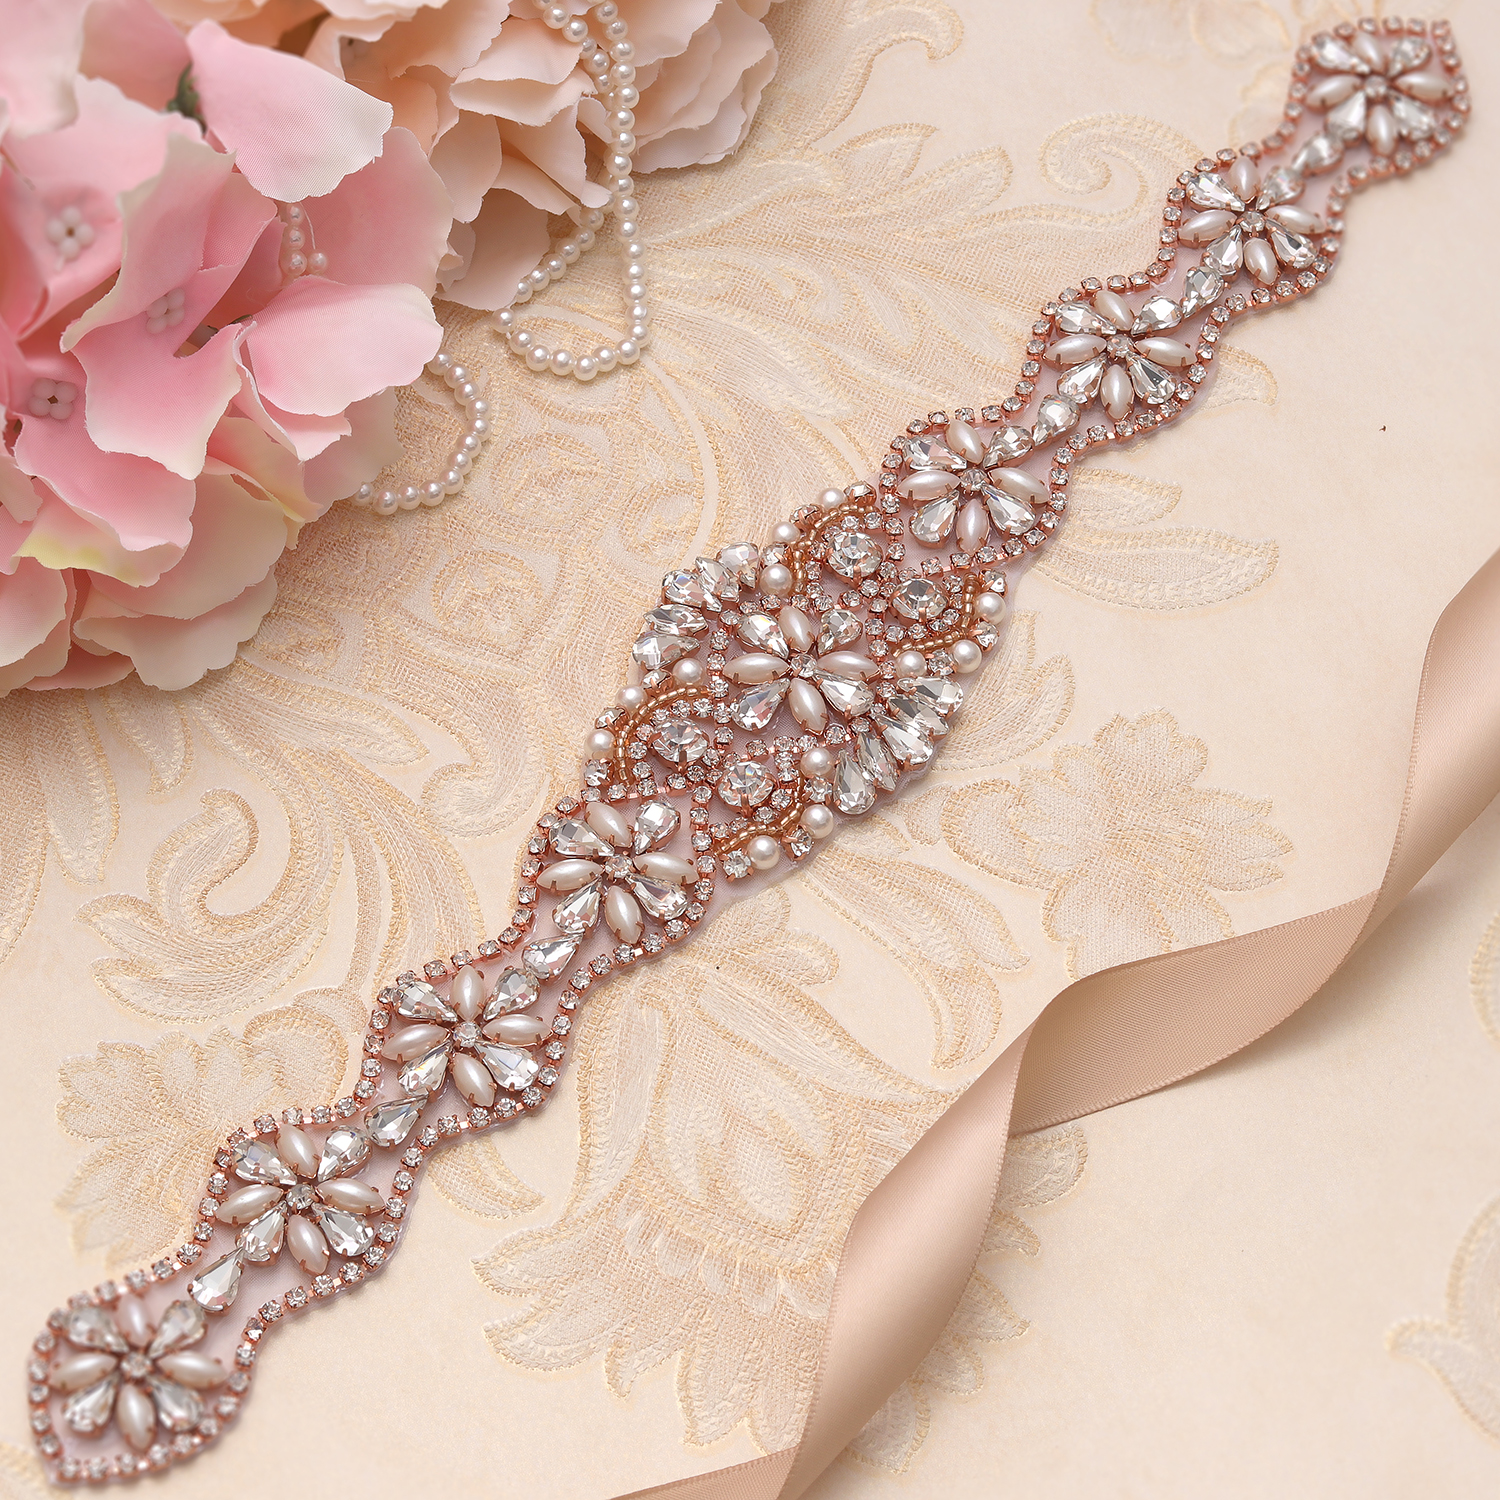 MissRDress Elegant Pearls Wedding Belt Rhinestones Bridal Belt Rose Gold Crystal Bridal Dress Sash For Wedding Accessories JK831